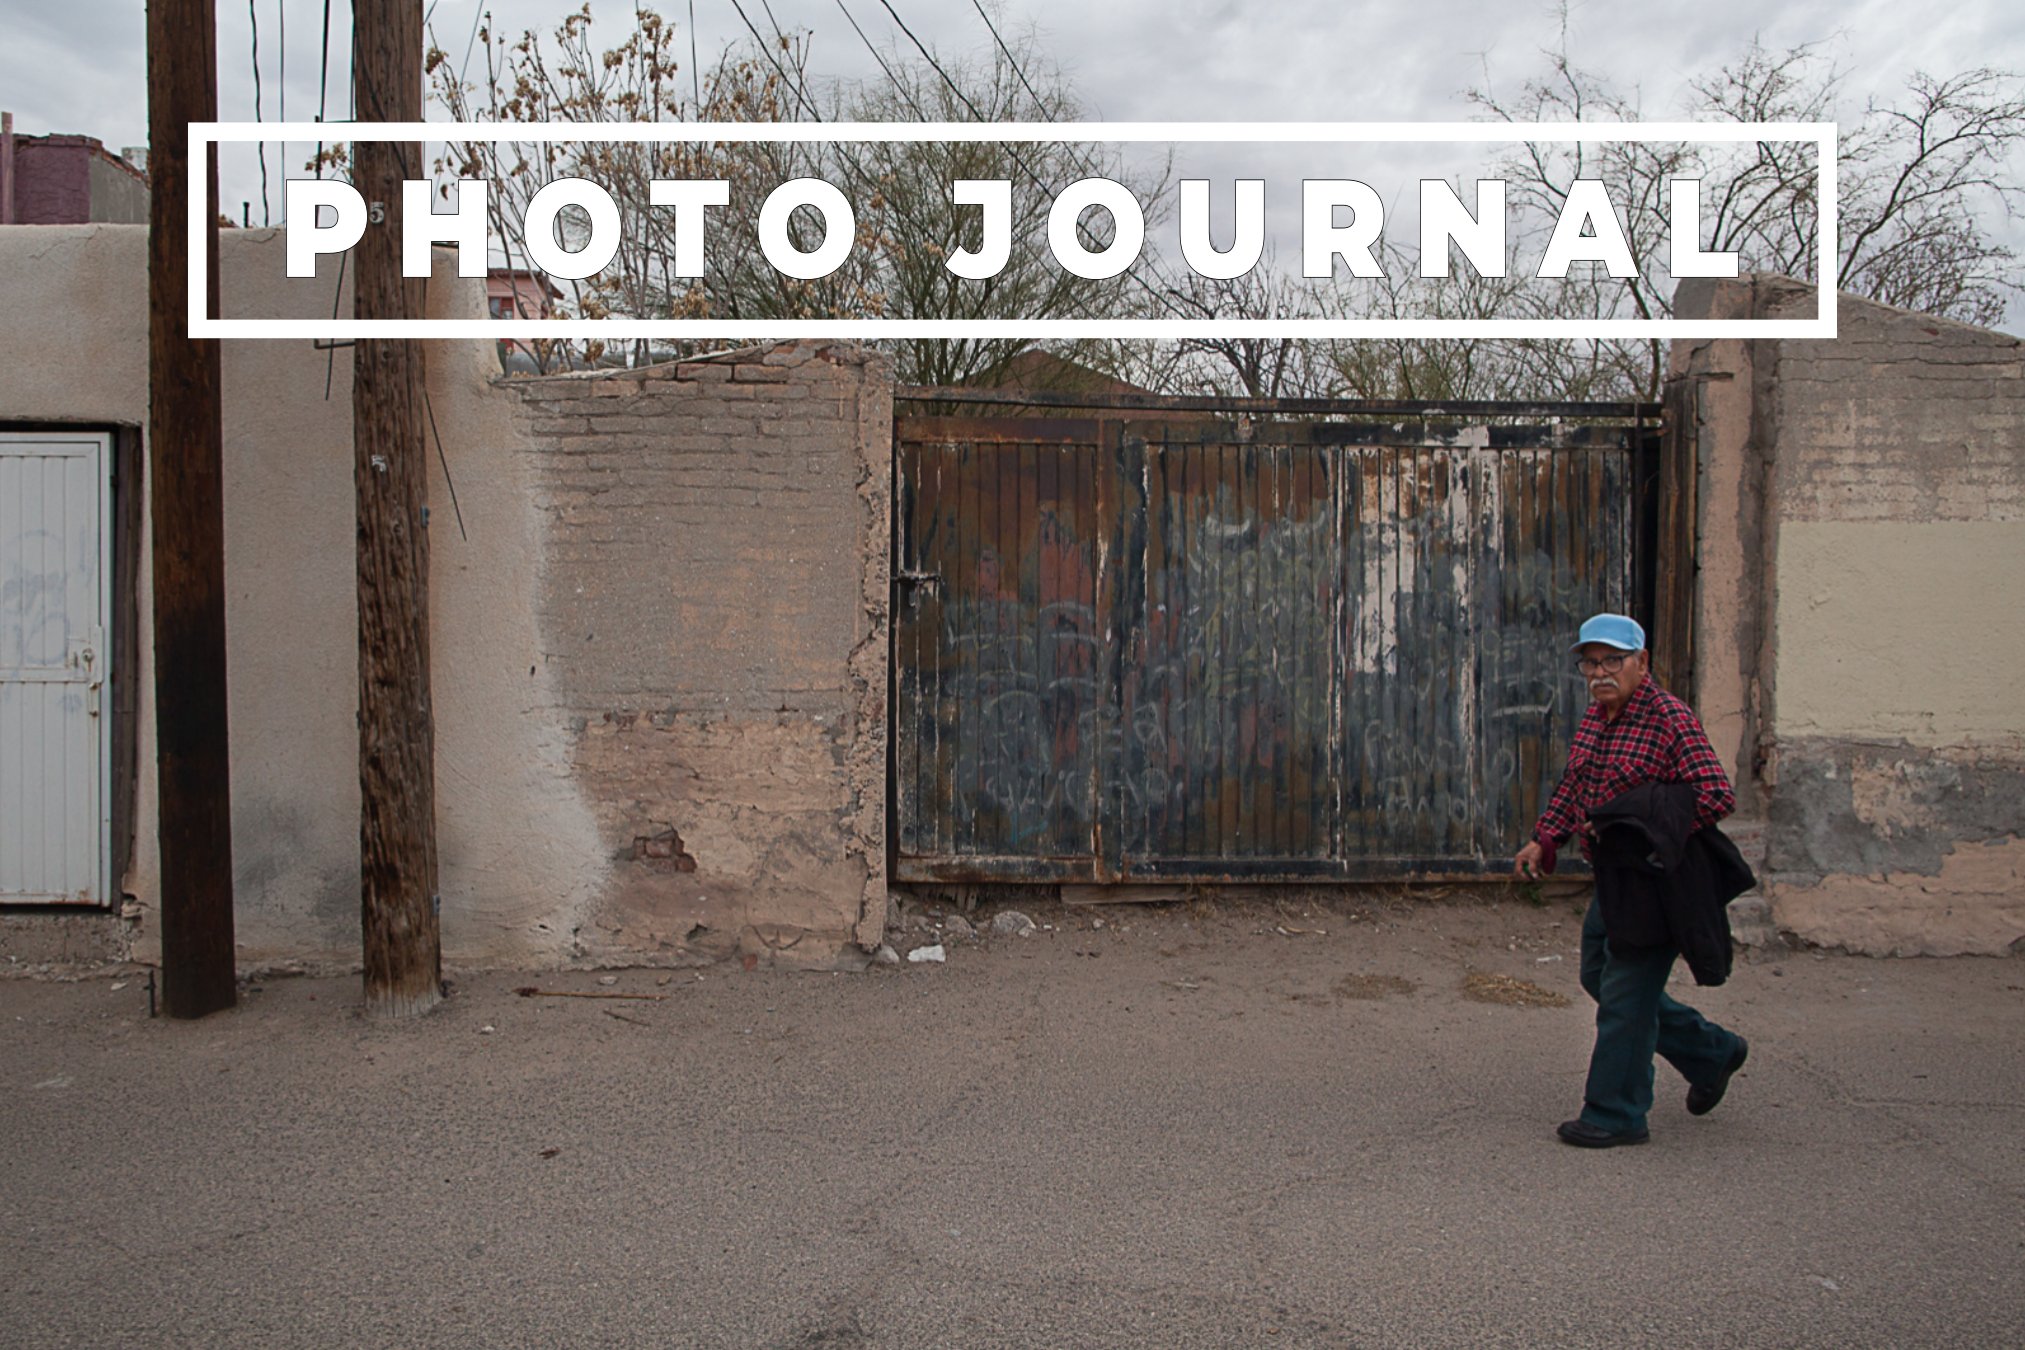 El Paso, TX - August 10, 2019Interstate Magazine photographed El Paso in mid March of this year. Then, on August 3, 2019, a lone shooter opened fire at the Cielo Vista Walmart, killing 22 people and injuring 24 more. Events like this jarringly alter a city, as if the entire population were involved in a high speed car crash. Still, while the El Paso of today undoubtedly feels different from the El Paso photographed this past March, those earlier photographs nonetheless capture the same, ever evolving El Paso. It is a city that wears its Mexican roots unapologetically on its sleeve, integral to the warp and weft of the American tapestry. Read more…